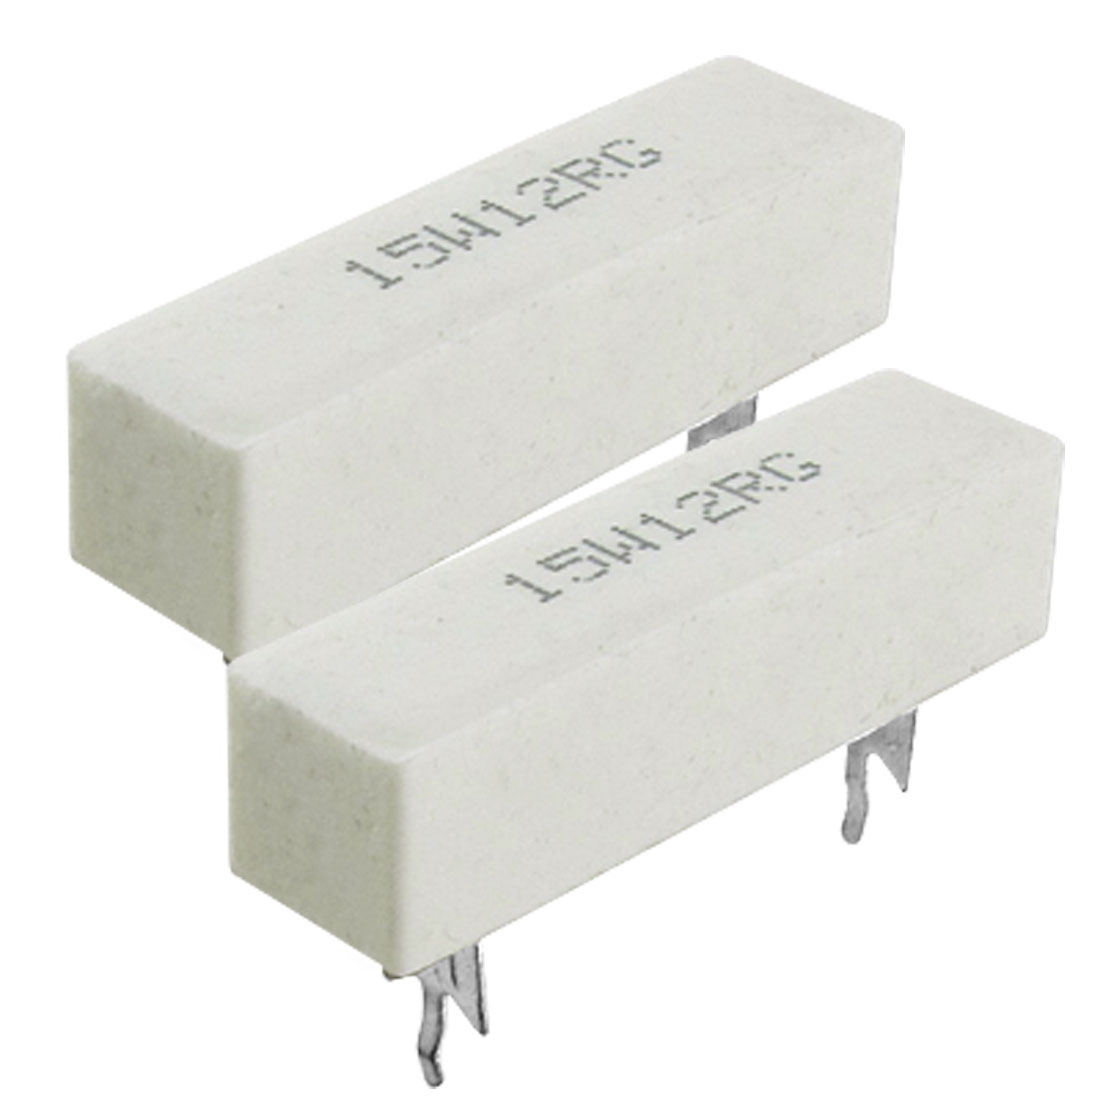 2x Wire Wound Ceramic Cement Power Resistor 15W 12 ohm 12R 2%